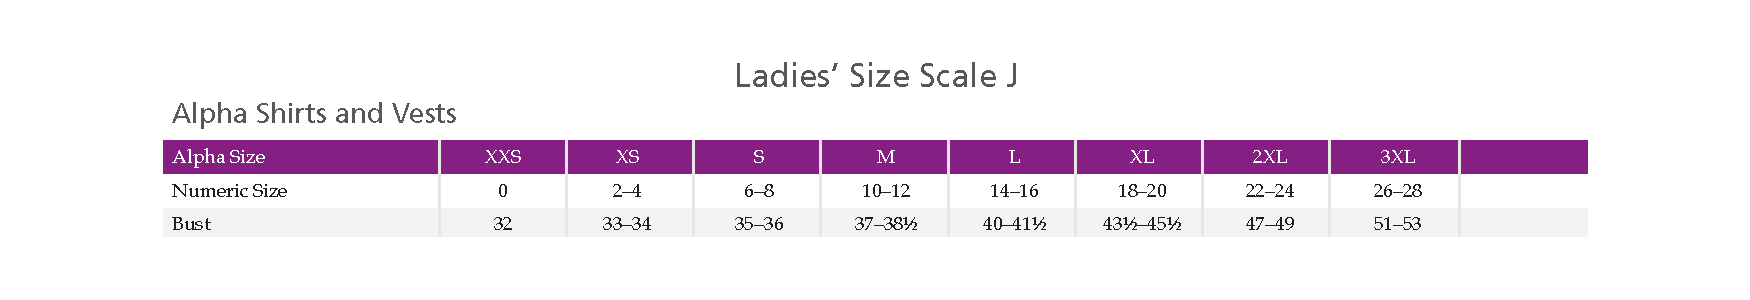 Size Scale J